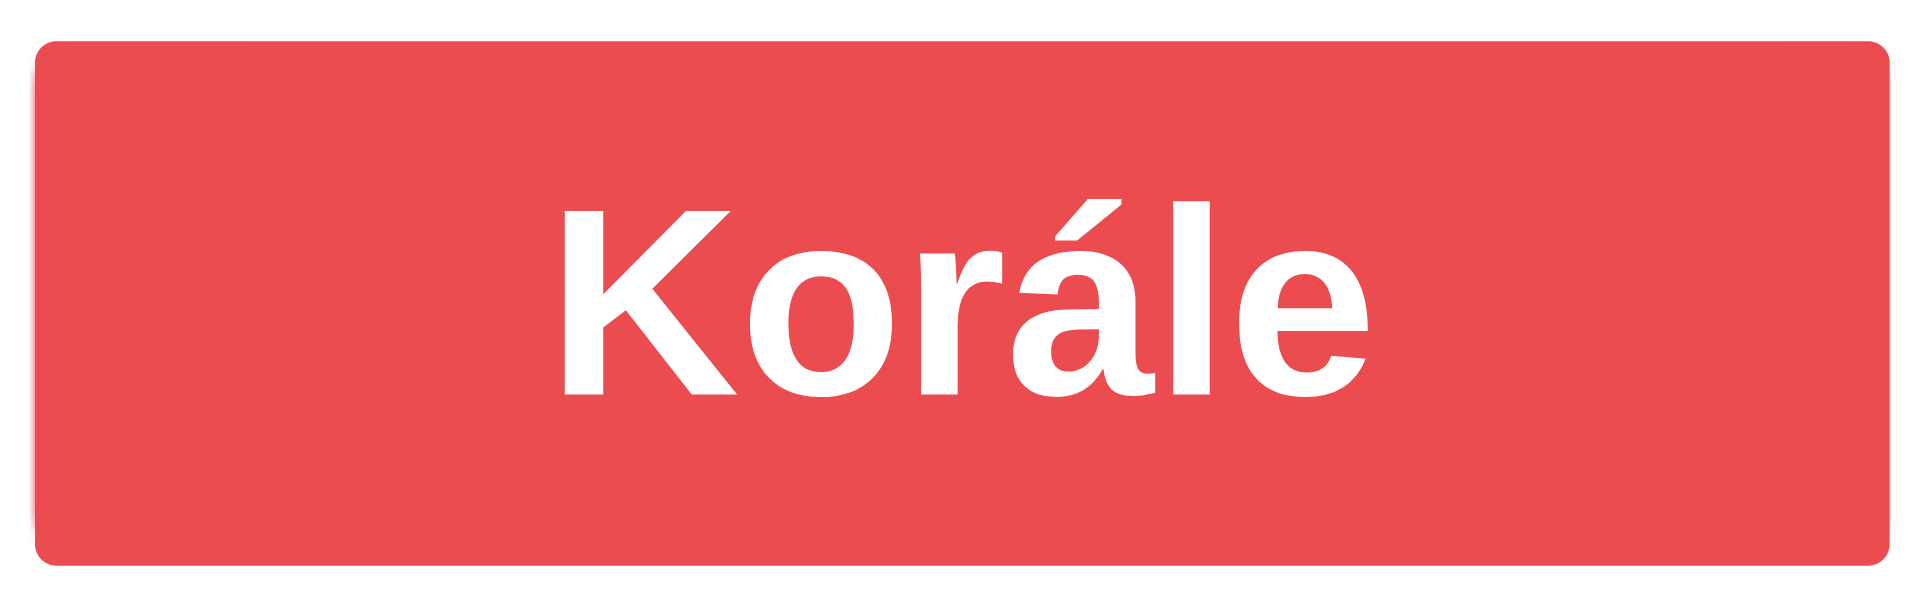 korale-button